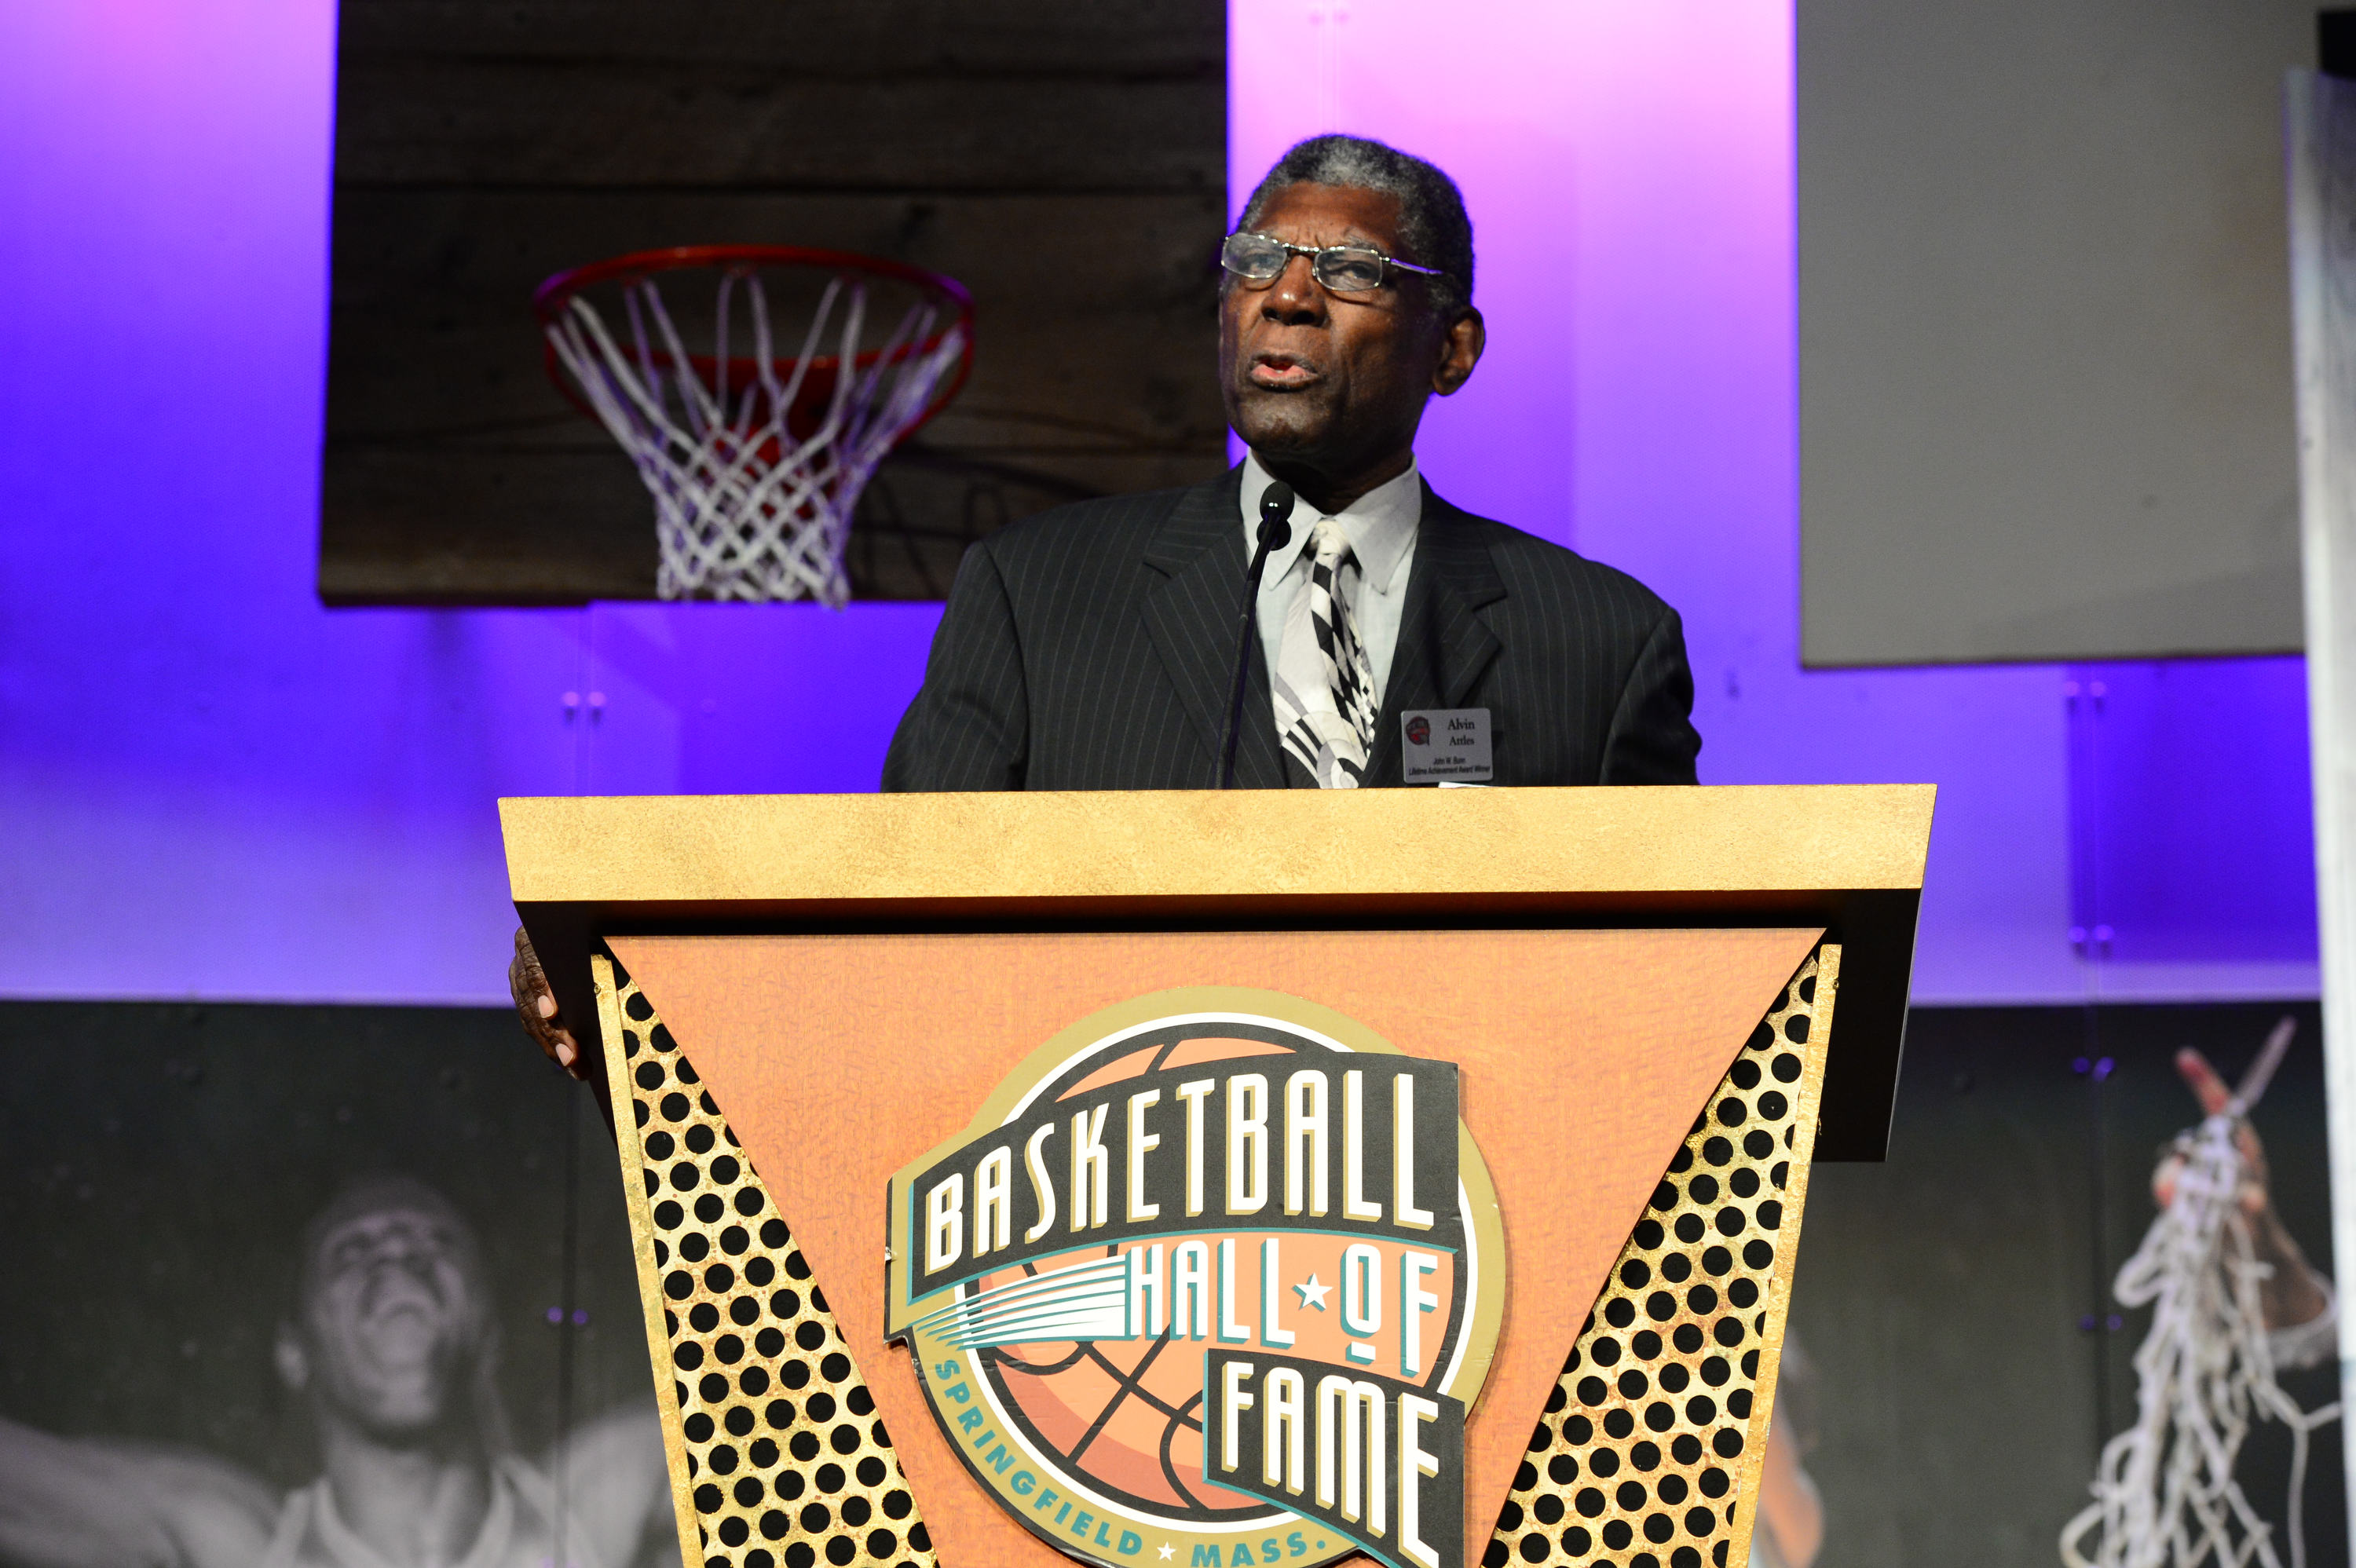 Al Attles, winner of the John W. Bunn Lifetime Achievement Award addresses the guests at the Family Reunion & Awards Dinner as part of the 2014 Basketball Hall of Fame Enshrinement Ceremony on August 7, 2014 at the Naismith Memorial Basketball Hall of Fame in Springfield, Massachusetts.